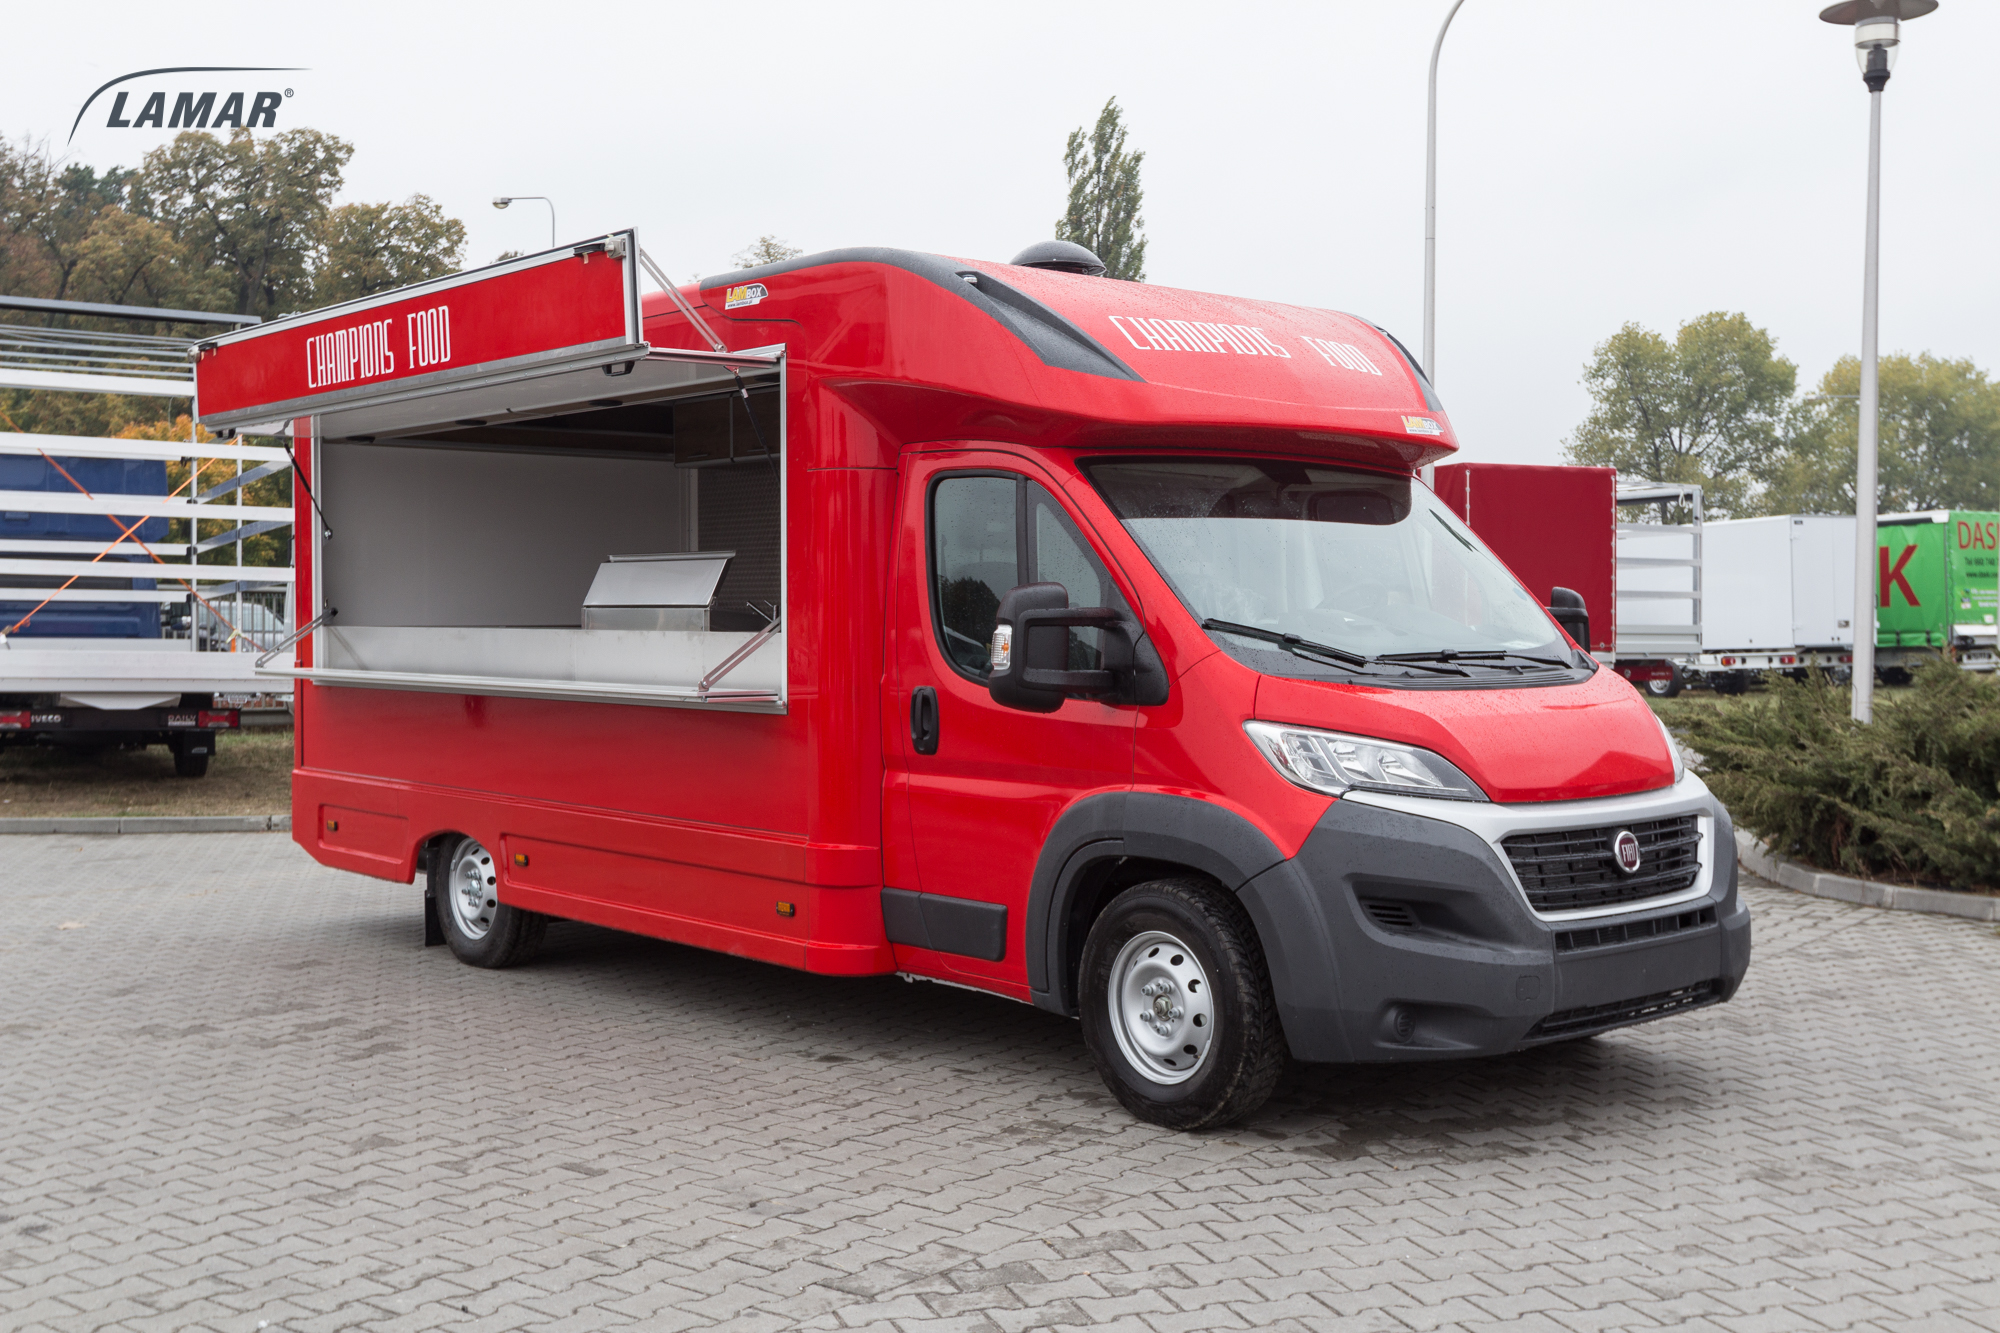 fiat ducato lambox food truck lamar. Black Bedroom Furniture Sets. Home Design Ideas